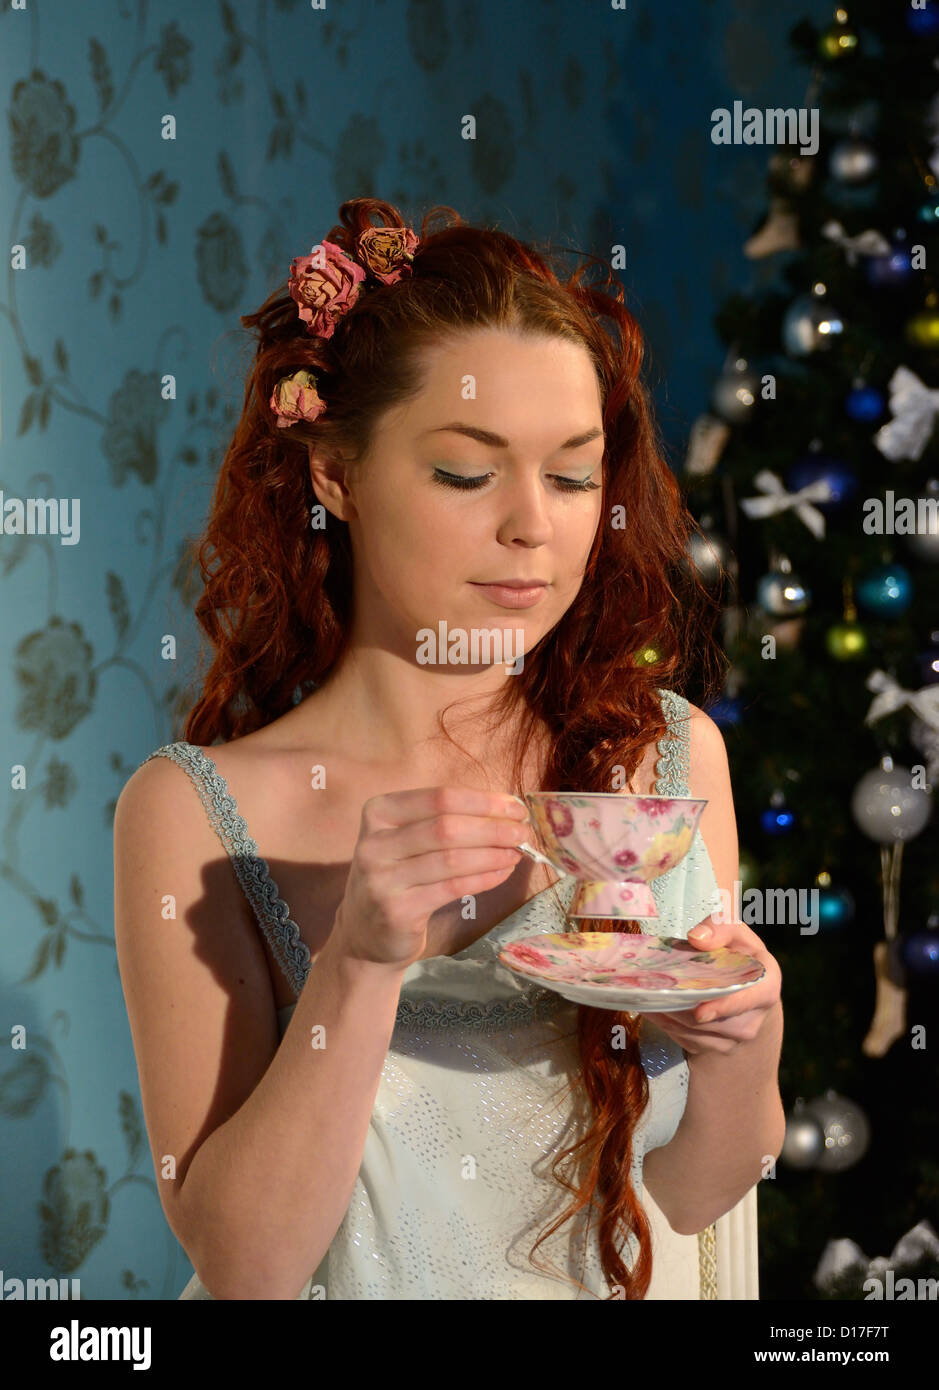 tea party on Christmas Eve - Stock Image